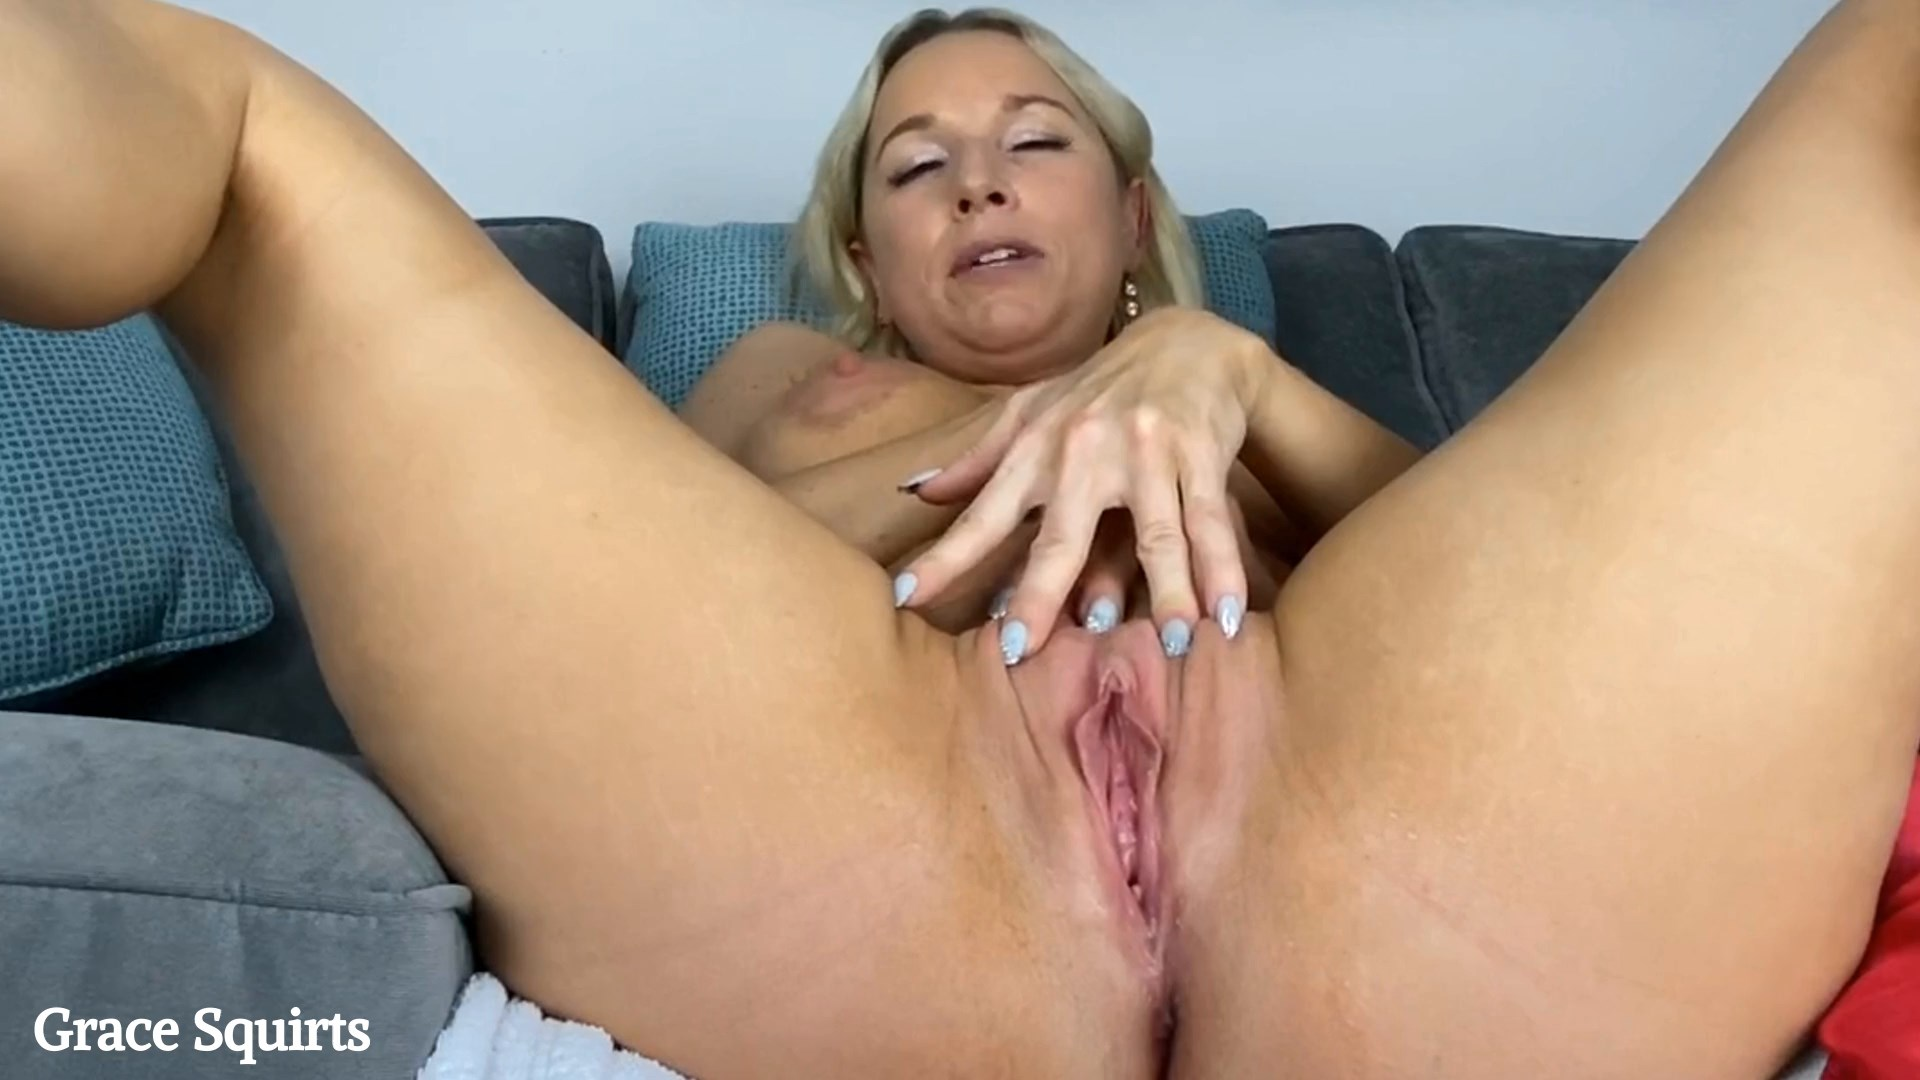 Grace Squirts - Catching Mommy Masturbate